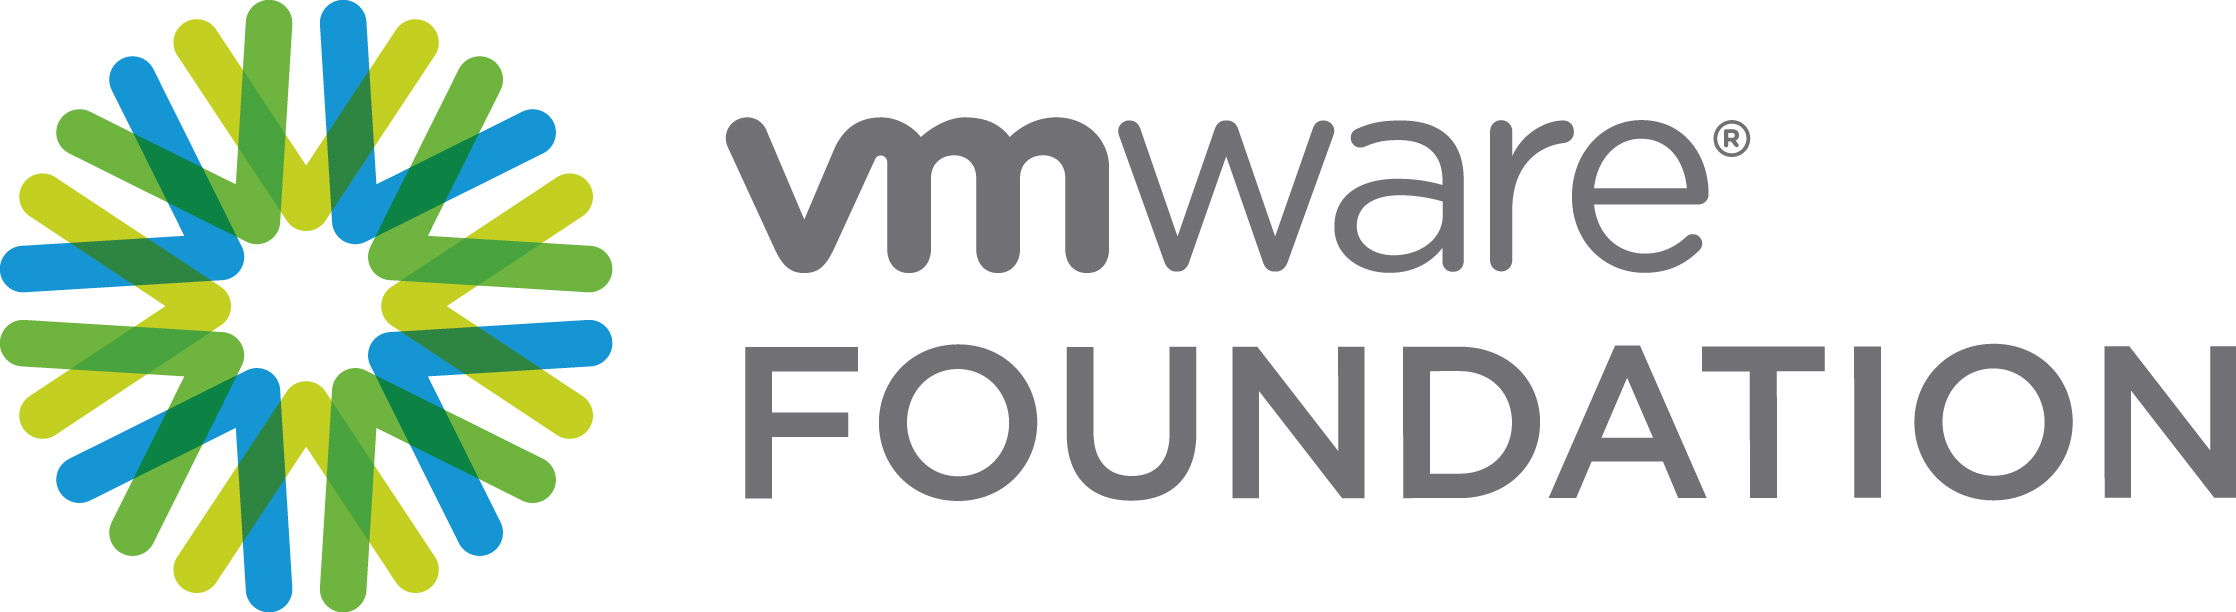 vmware-foundation